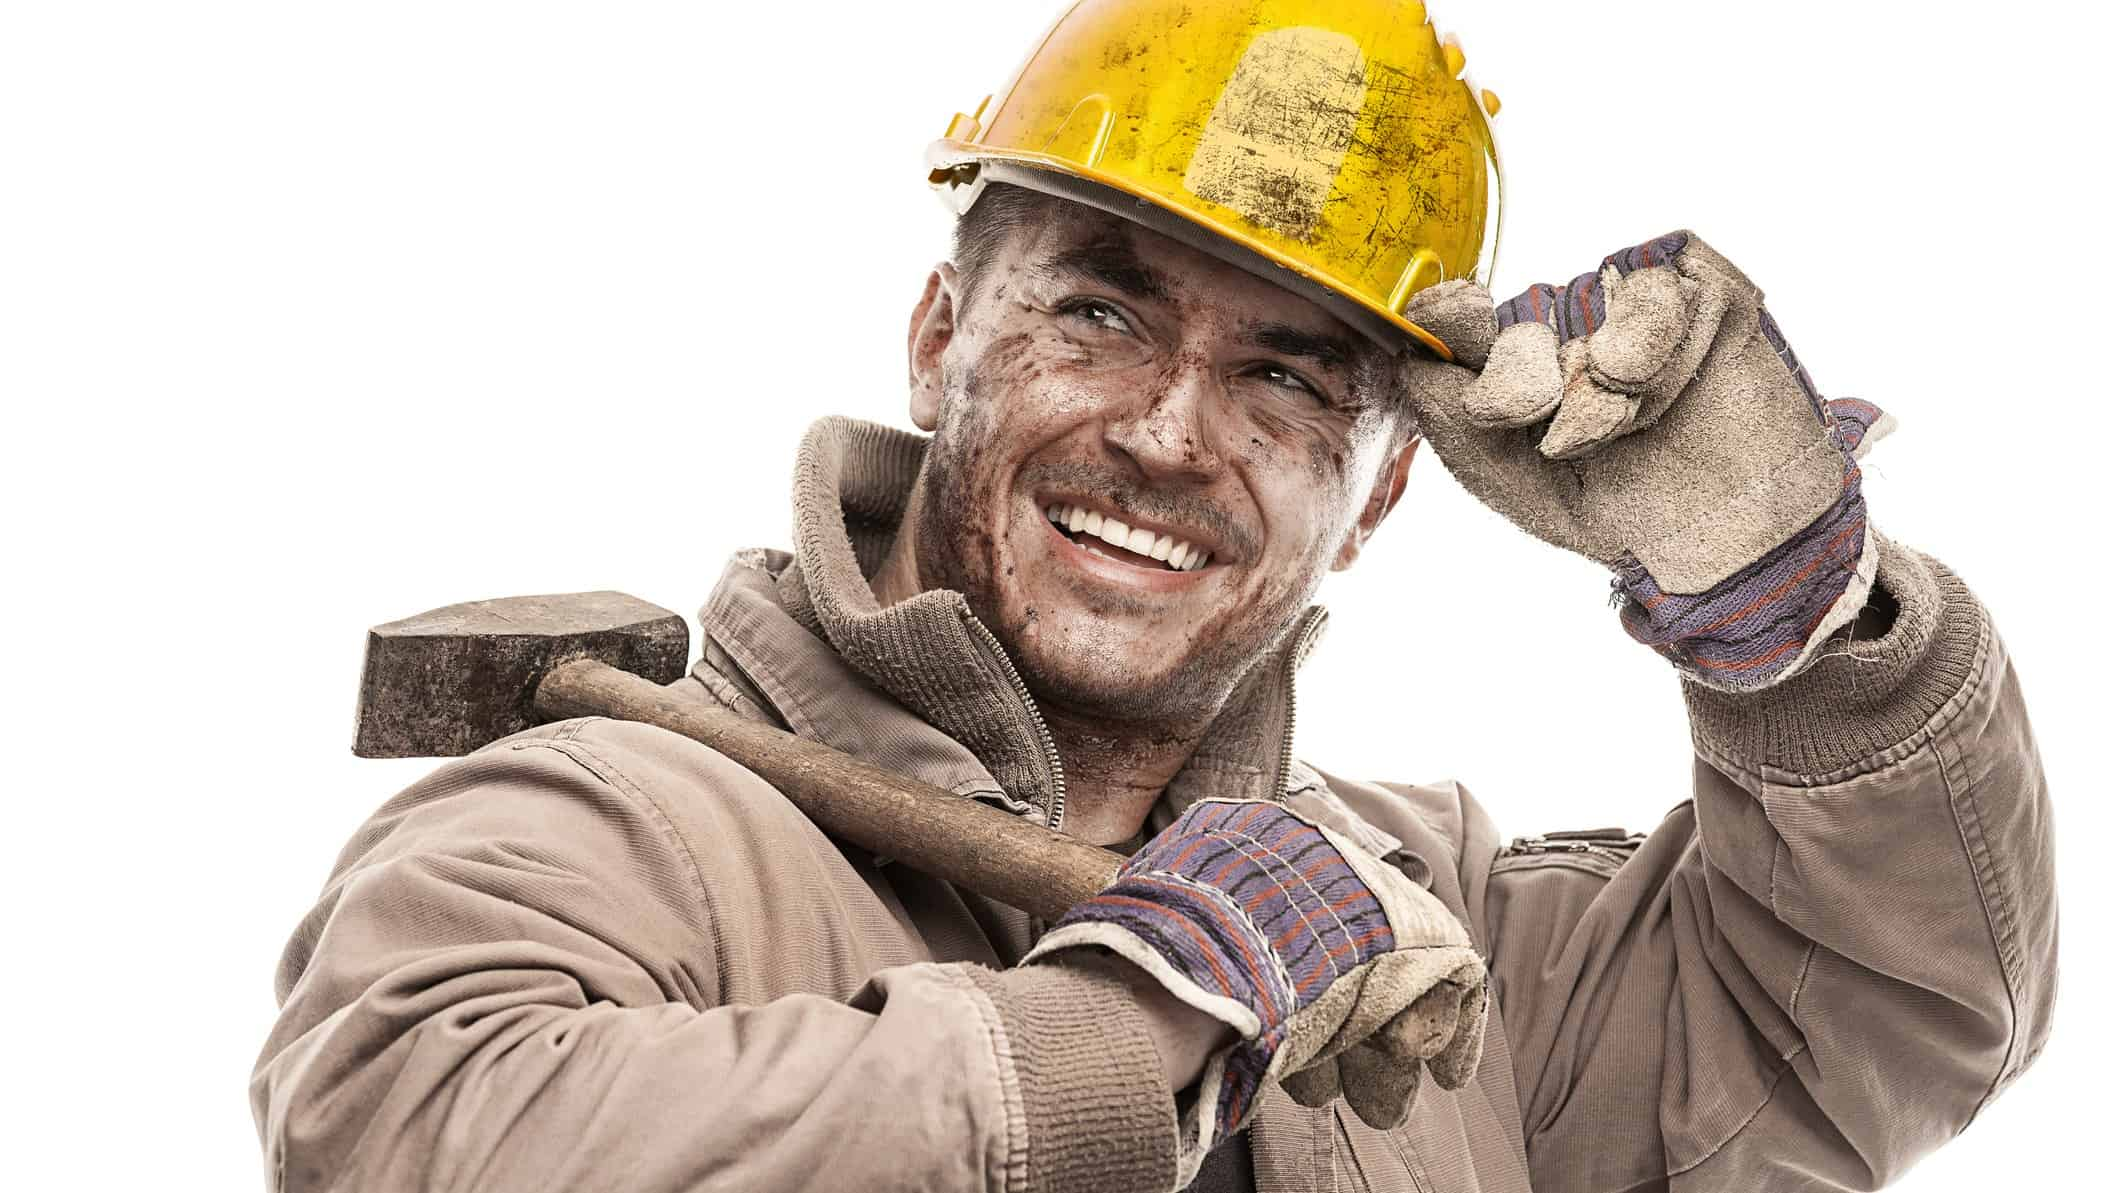 A happy miner tips his hard hat, indicating good ashare price results for ASX mining stocks